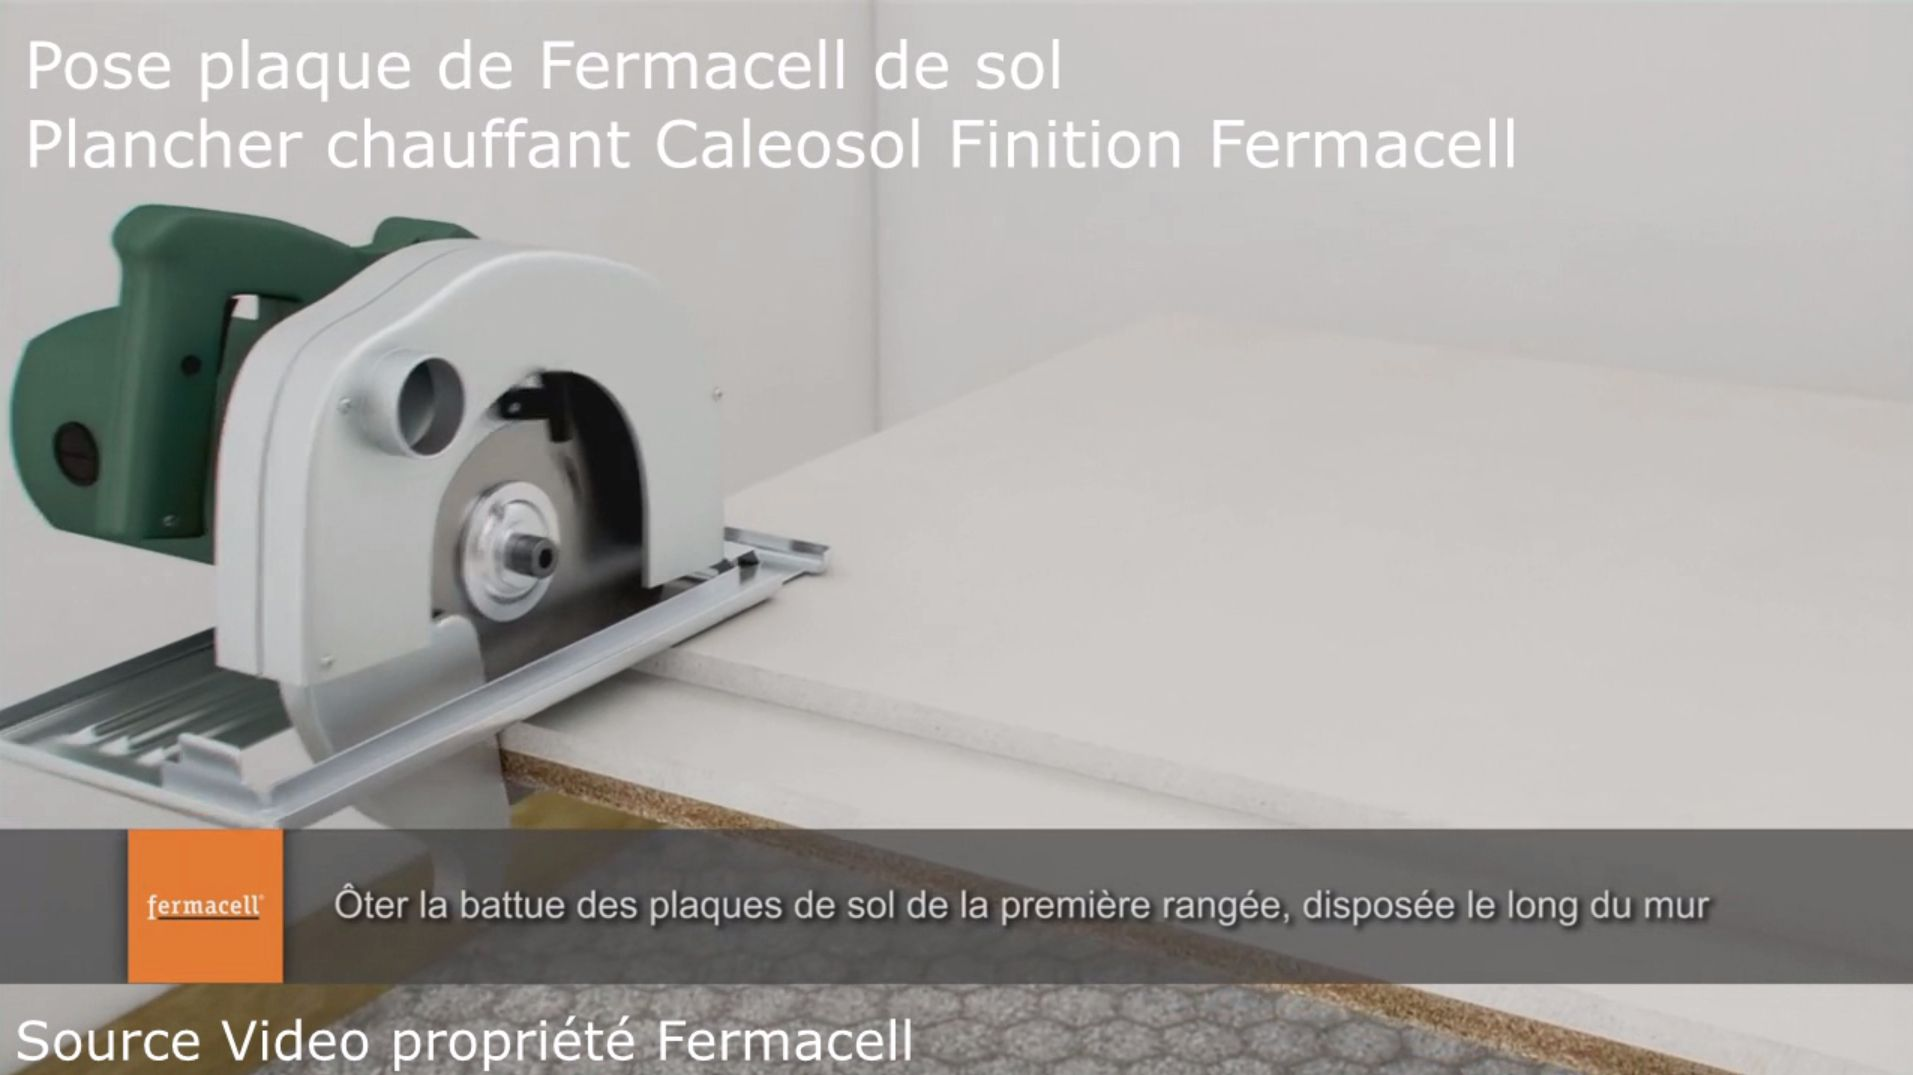 Pose plaque Fermacell plancher chauffant